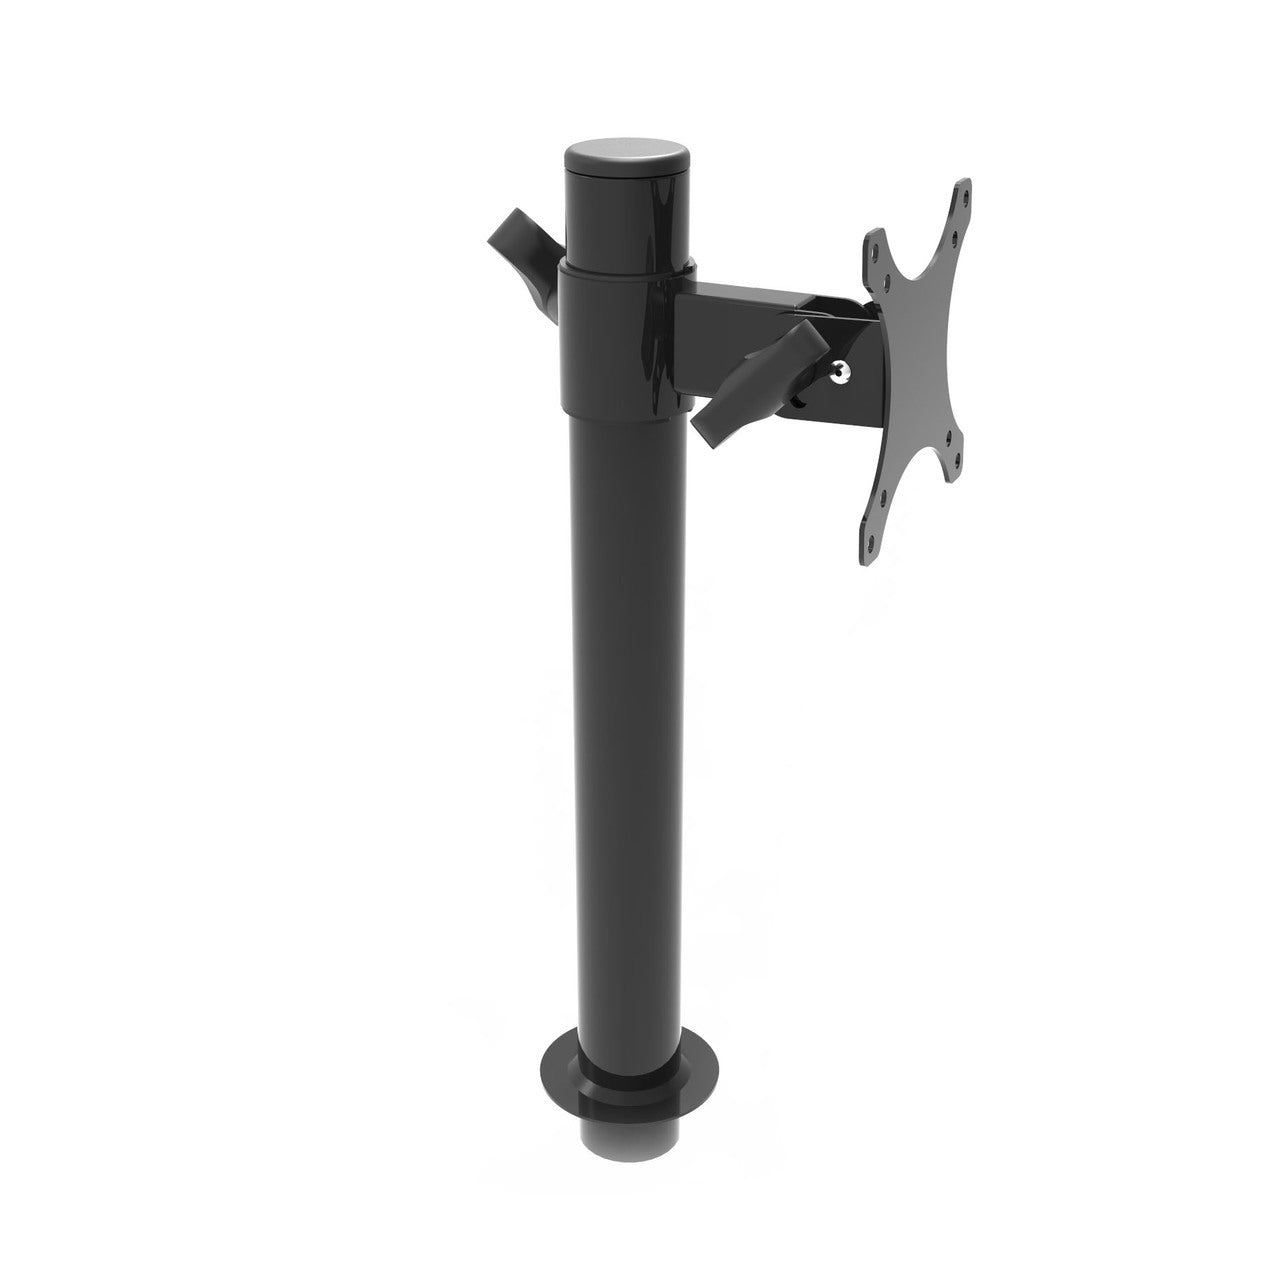 VersaDesk Universal Single LCD Monitor Arm Black Side View